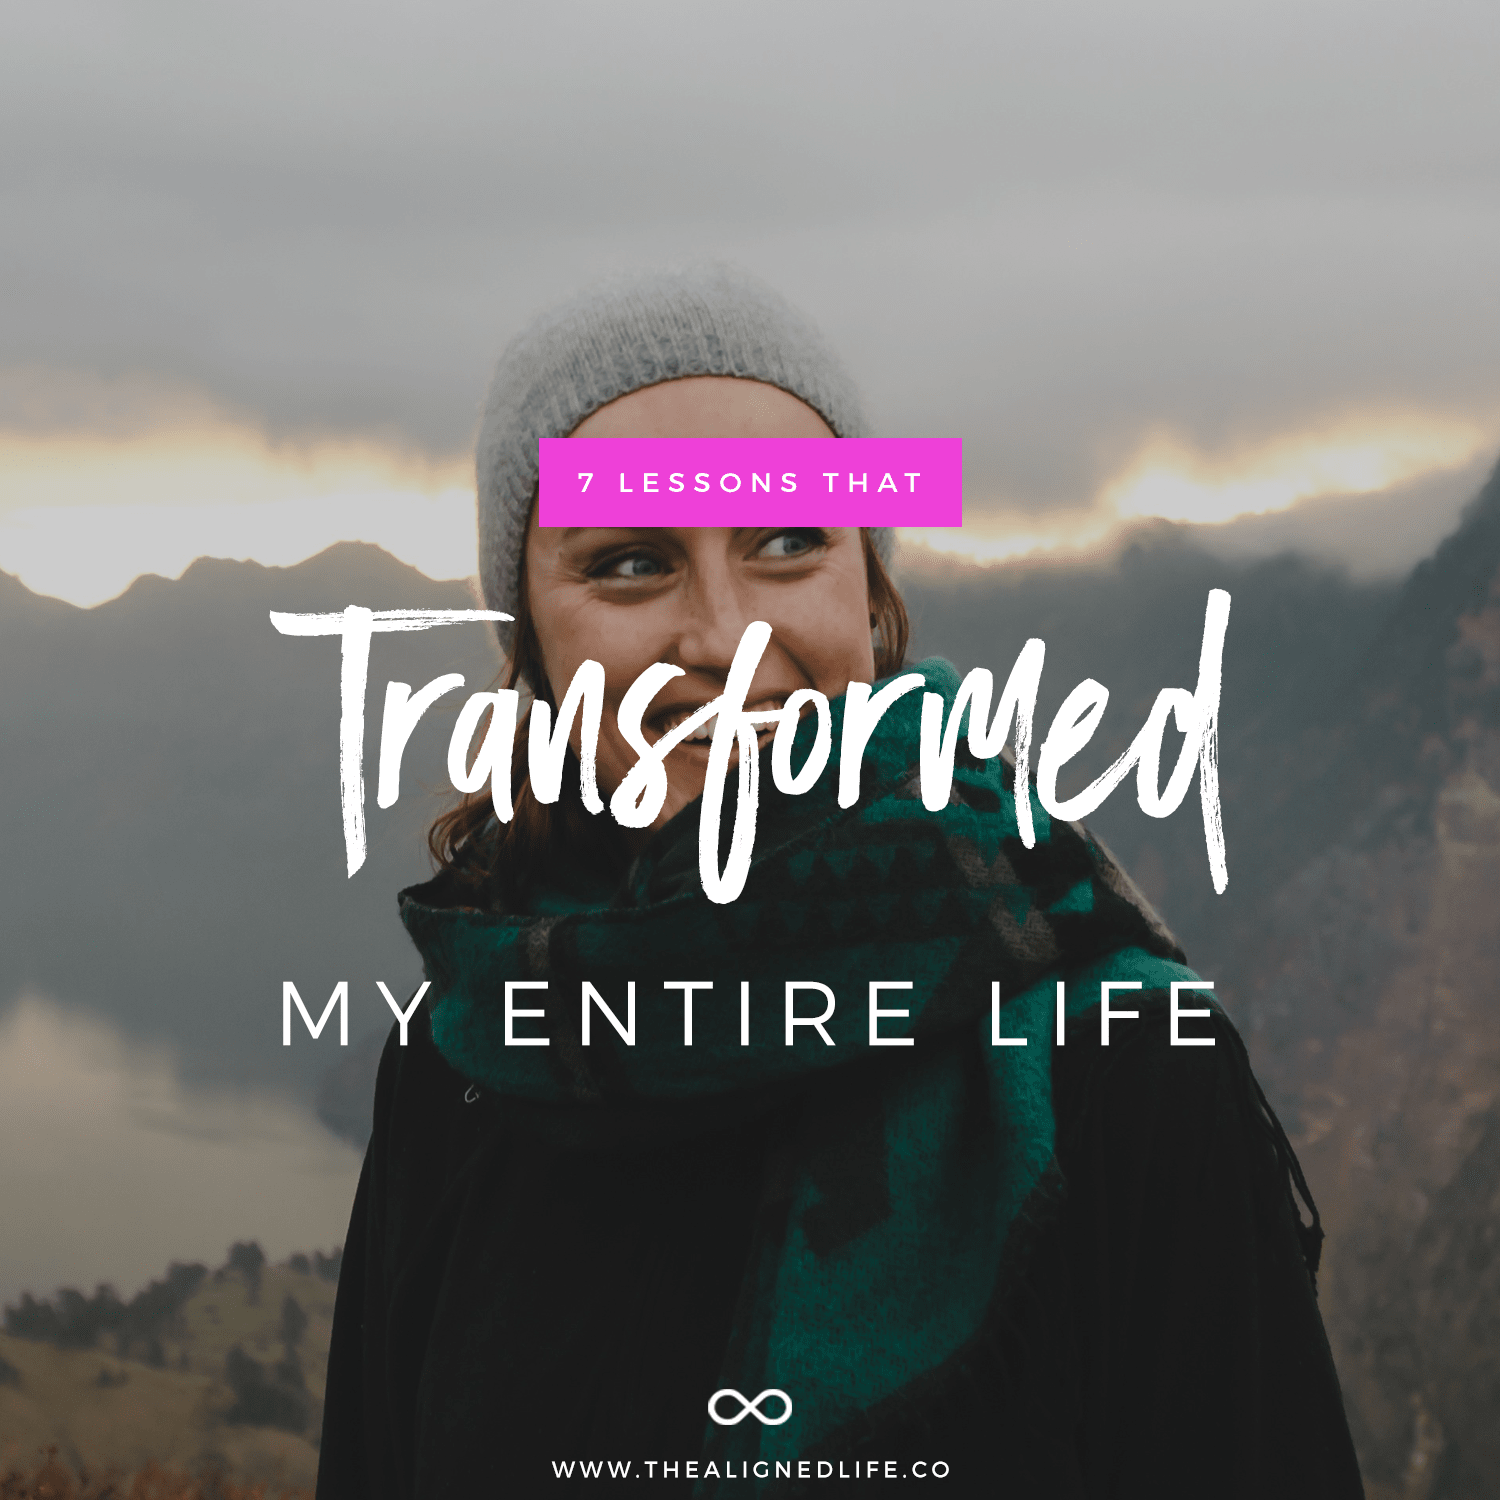 7 Lessons That Transformed My Entire Life